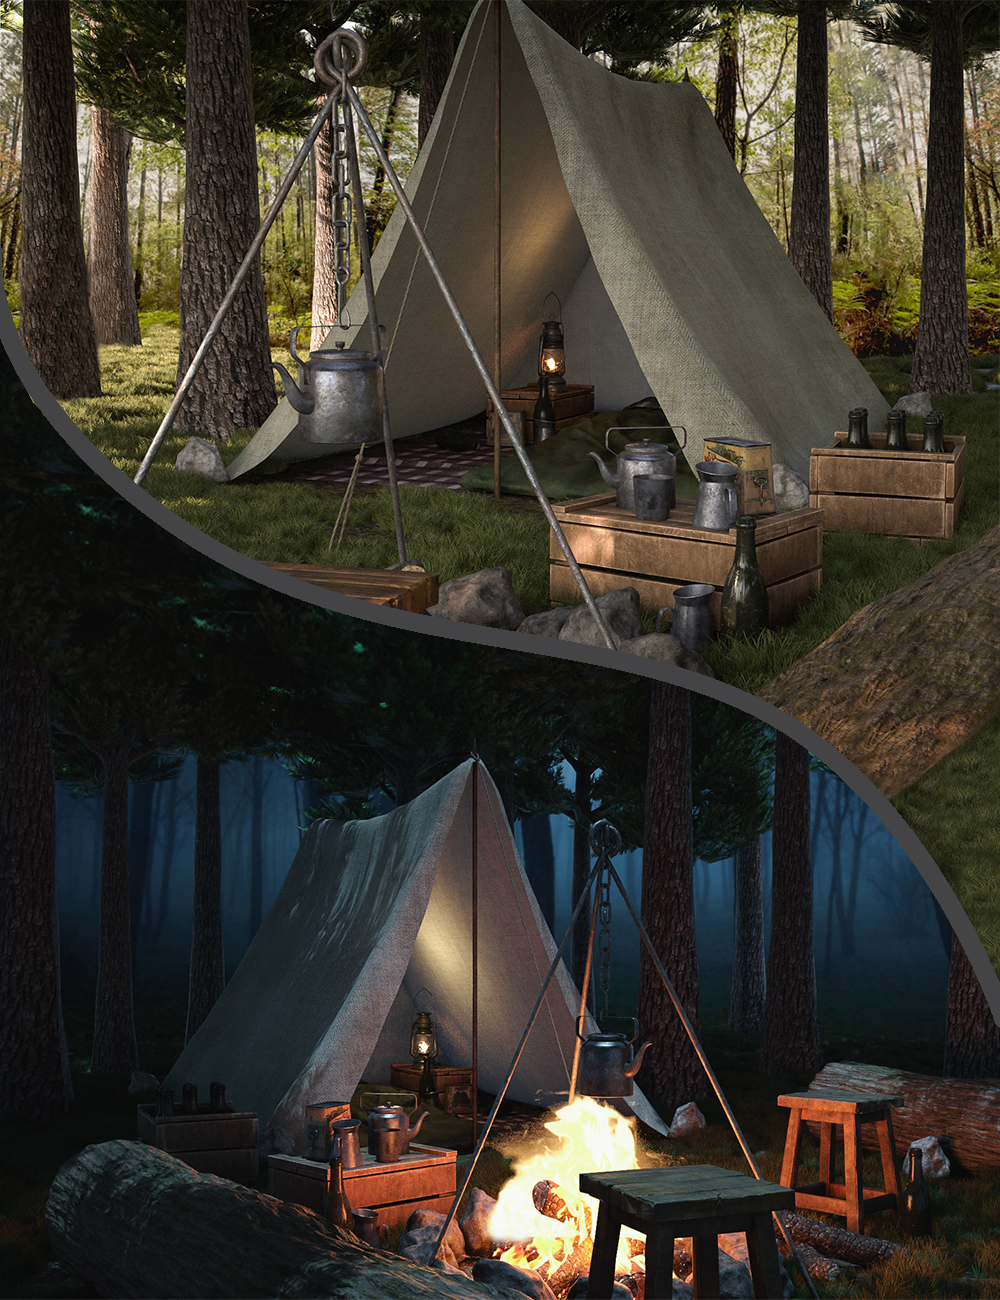 Camping Time by: 3dLab, 3D Models by Daz 3D